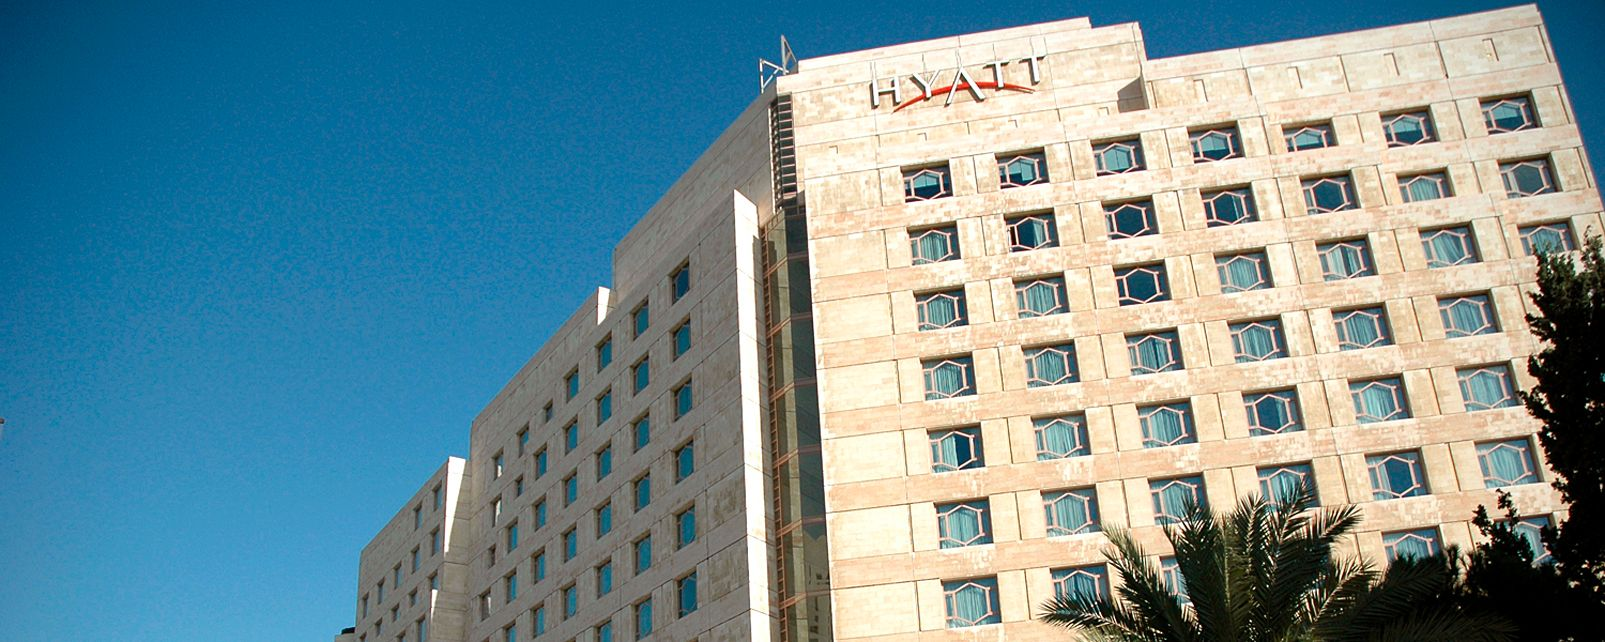 Hôtel Grand Hyatt Amman